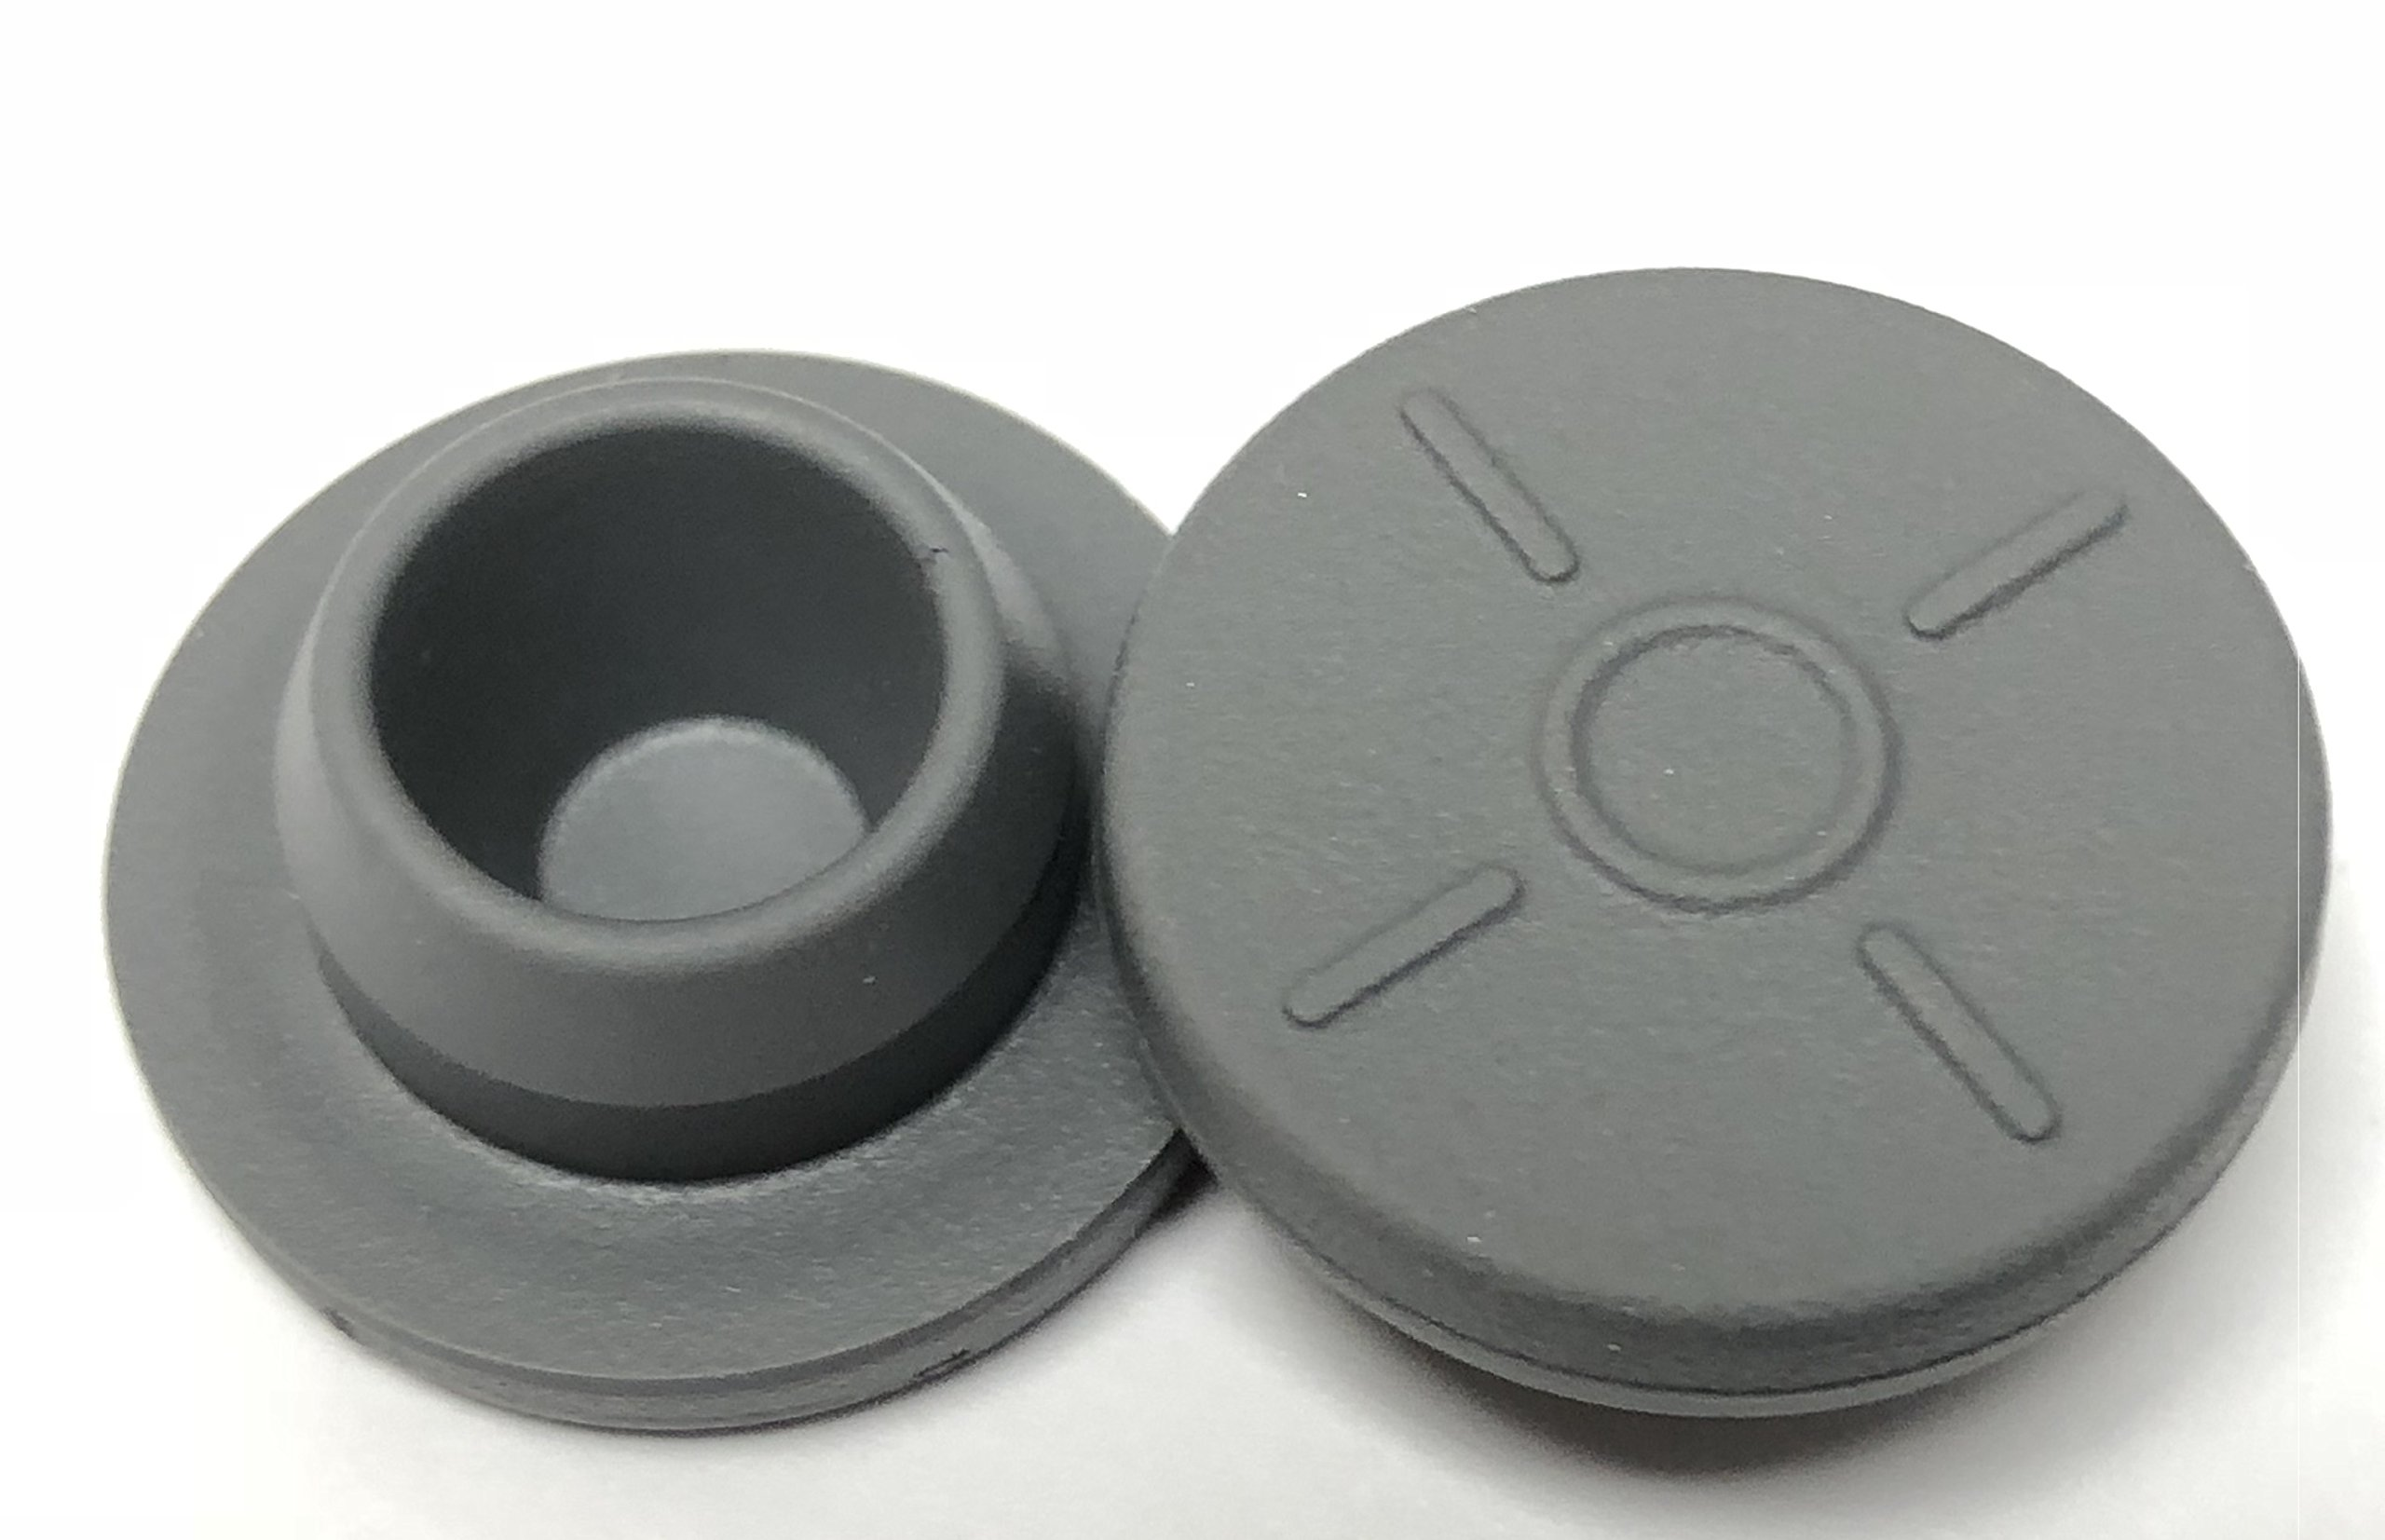 20mm Rubber Stoppers Snap On Easy 100pk